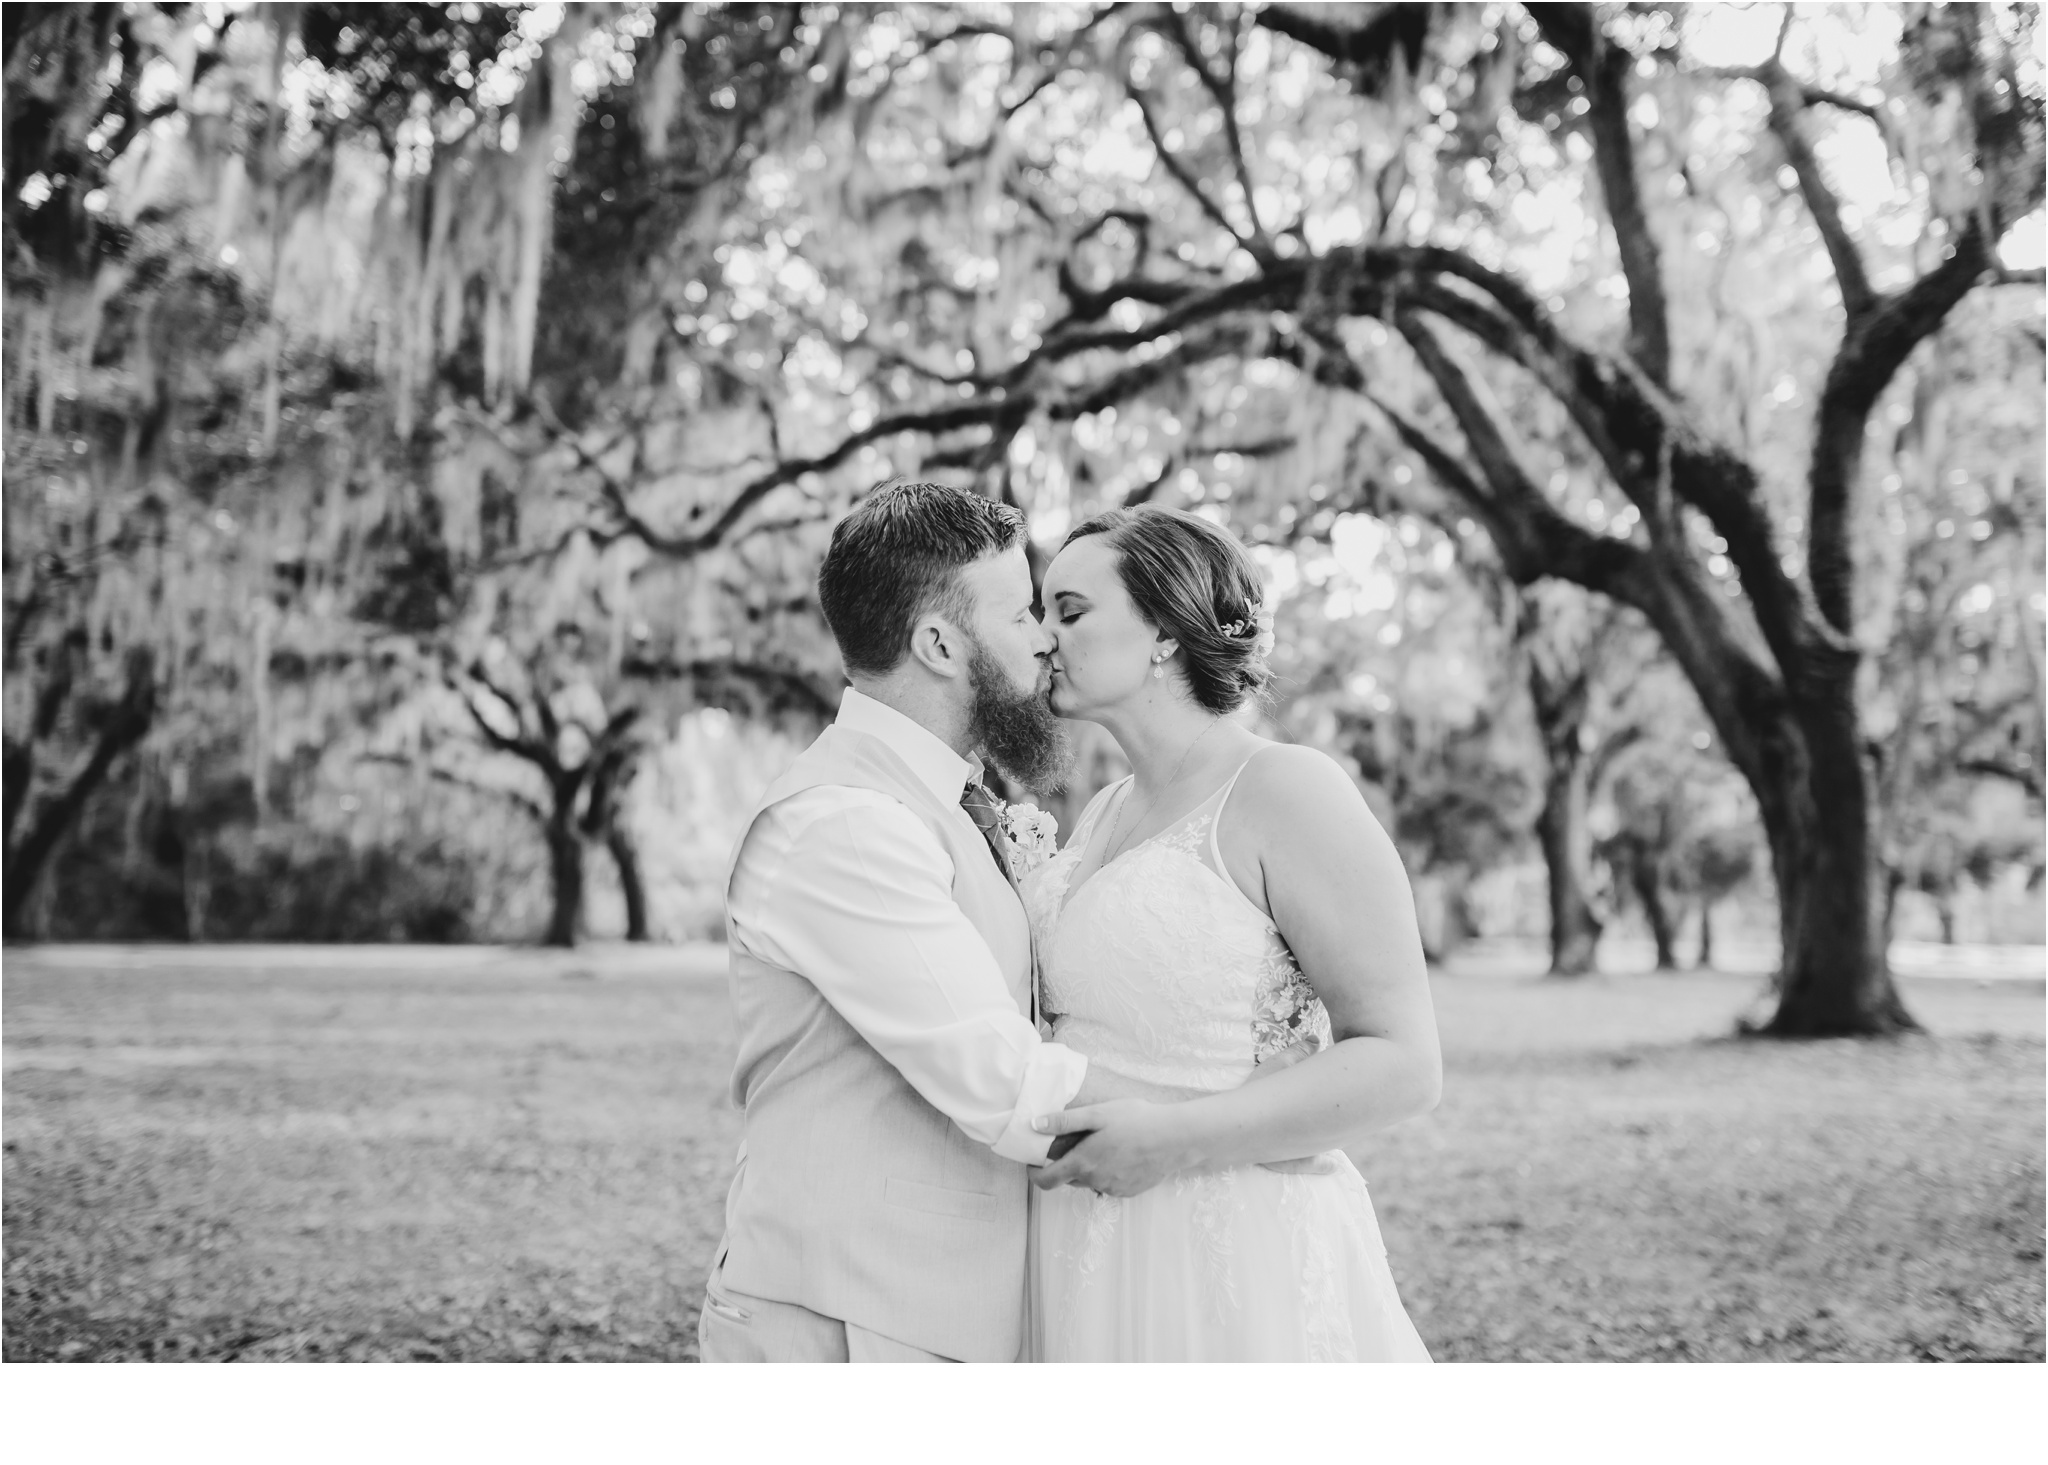 Rainey_Gregg_Photography_St._Simons_Island_Georgia_California_Wedding_Portrait_Photography_1726.jpg